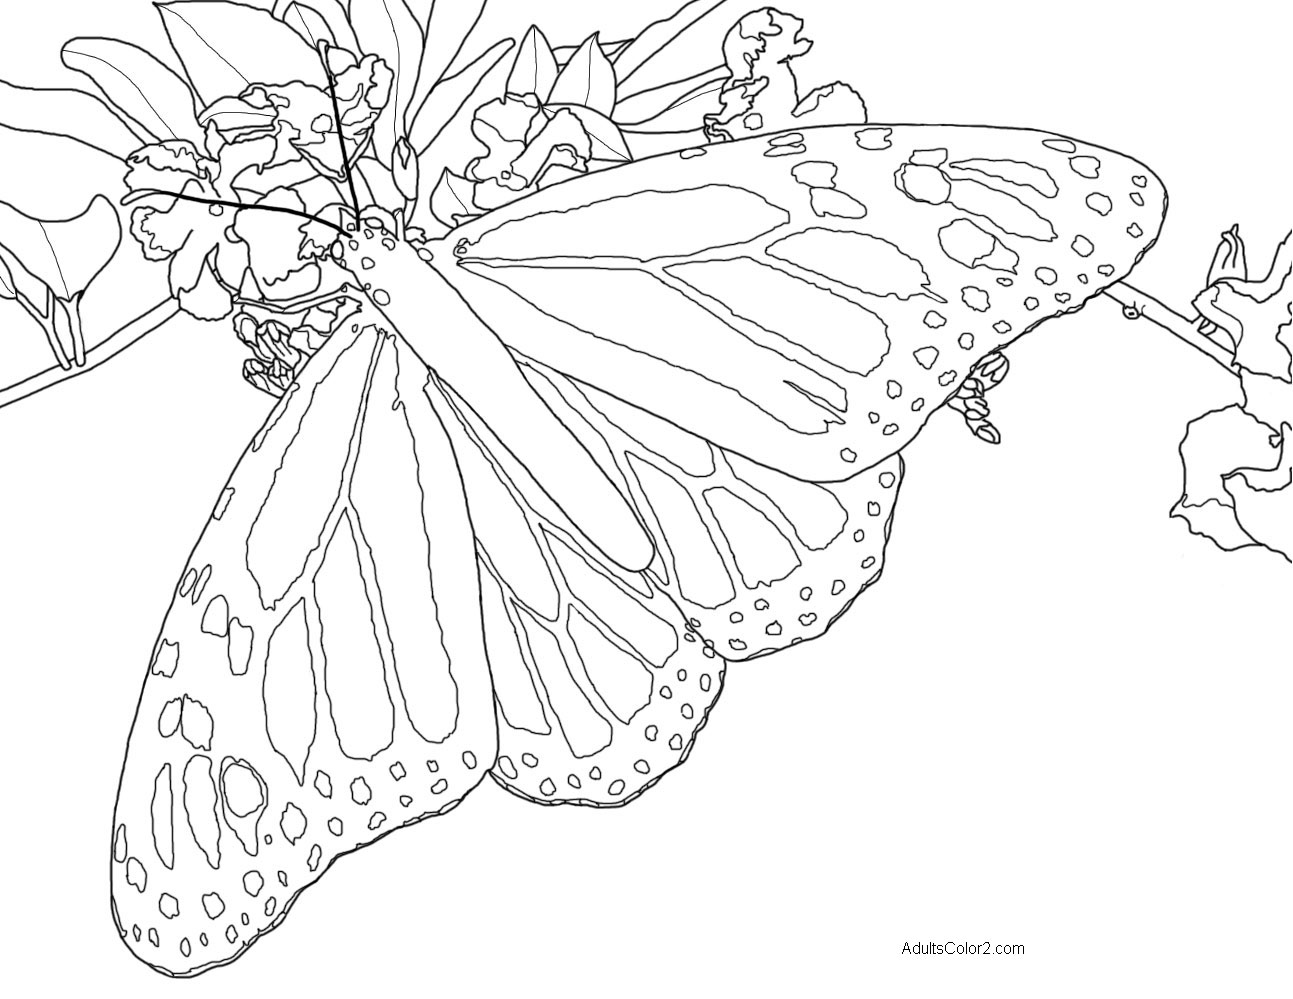 Line drawing of a monarch butterfly.